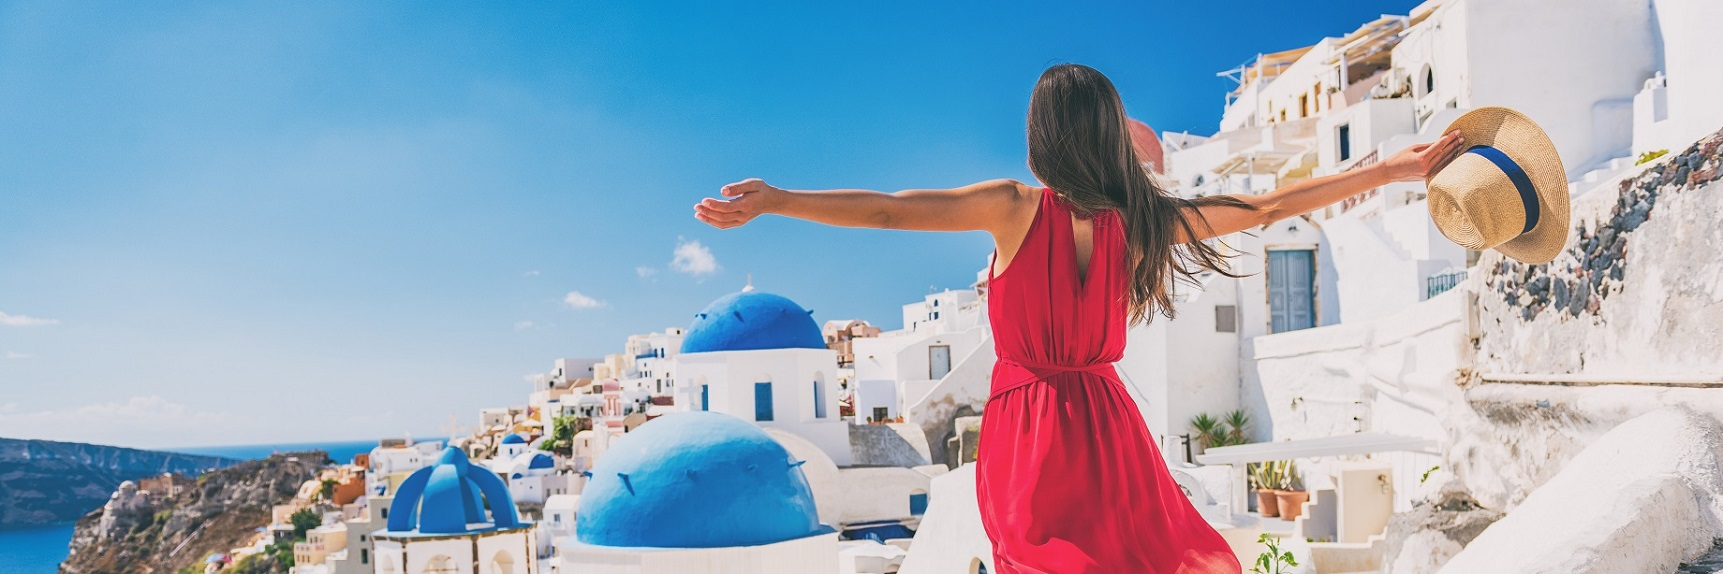 Europe travel vacation fun summer woman feeling free dancing with arms open in freedom at Oia, Santorini, Greece island. Carefree girl tourist banner panorama.